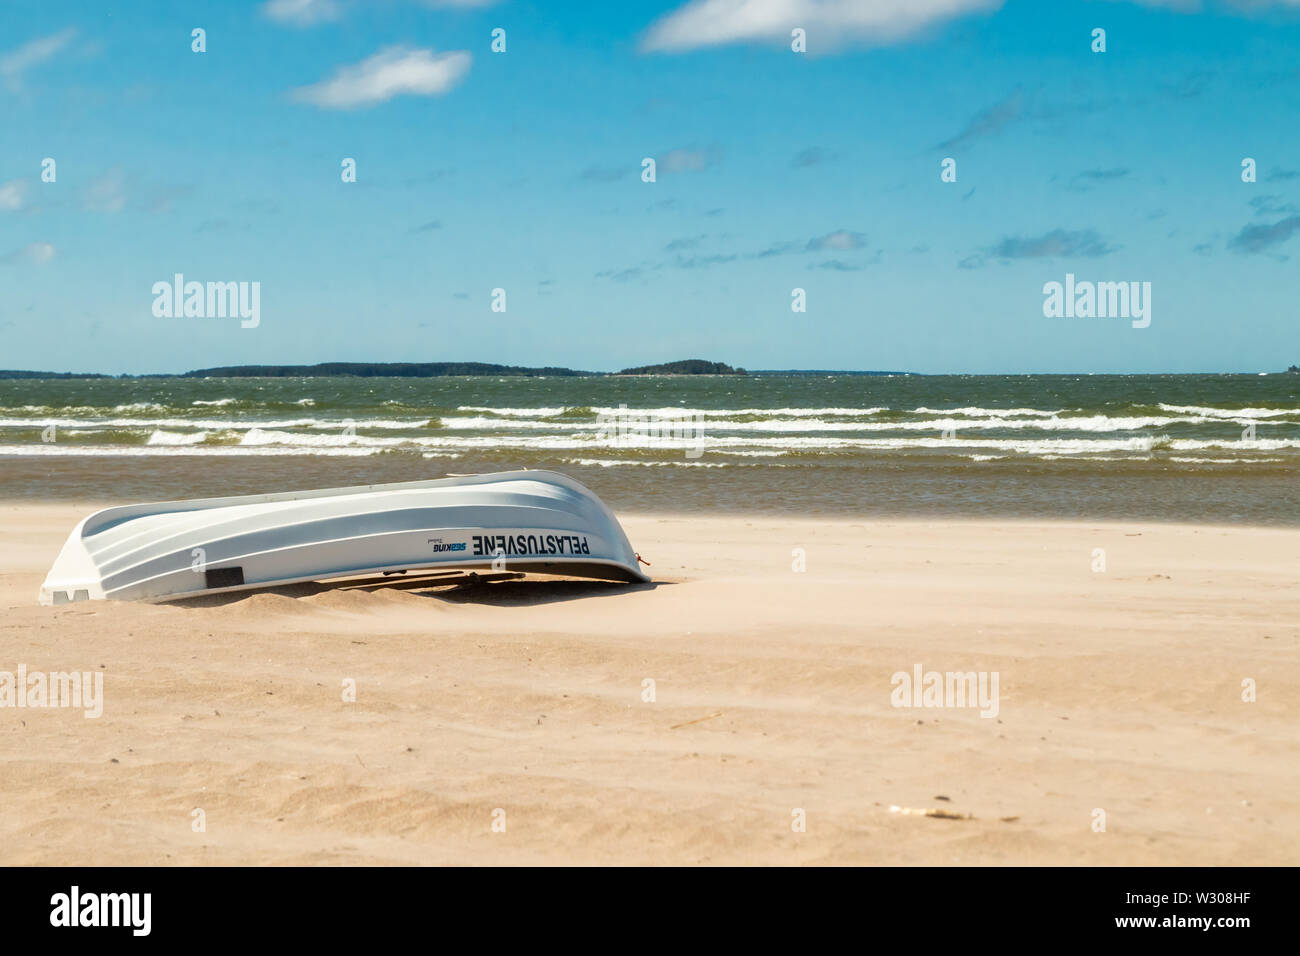 Pori, Finland - 27 June, 2019: Lifeboat on beautiful sandy beach Yyteri at summer, in Pori, Finland - Stock Image